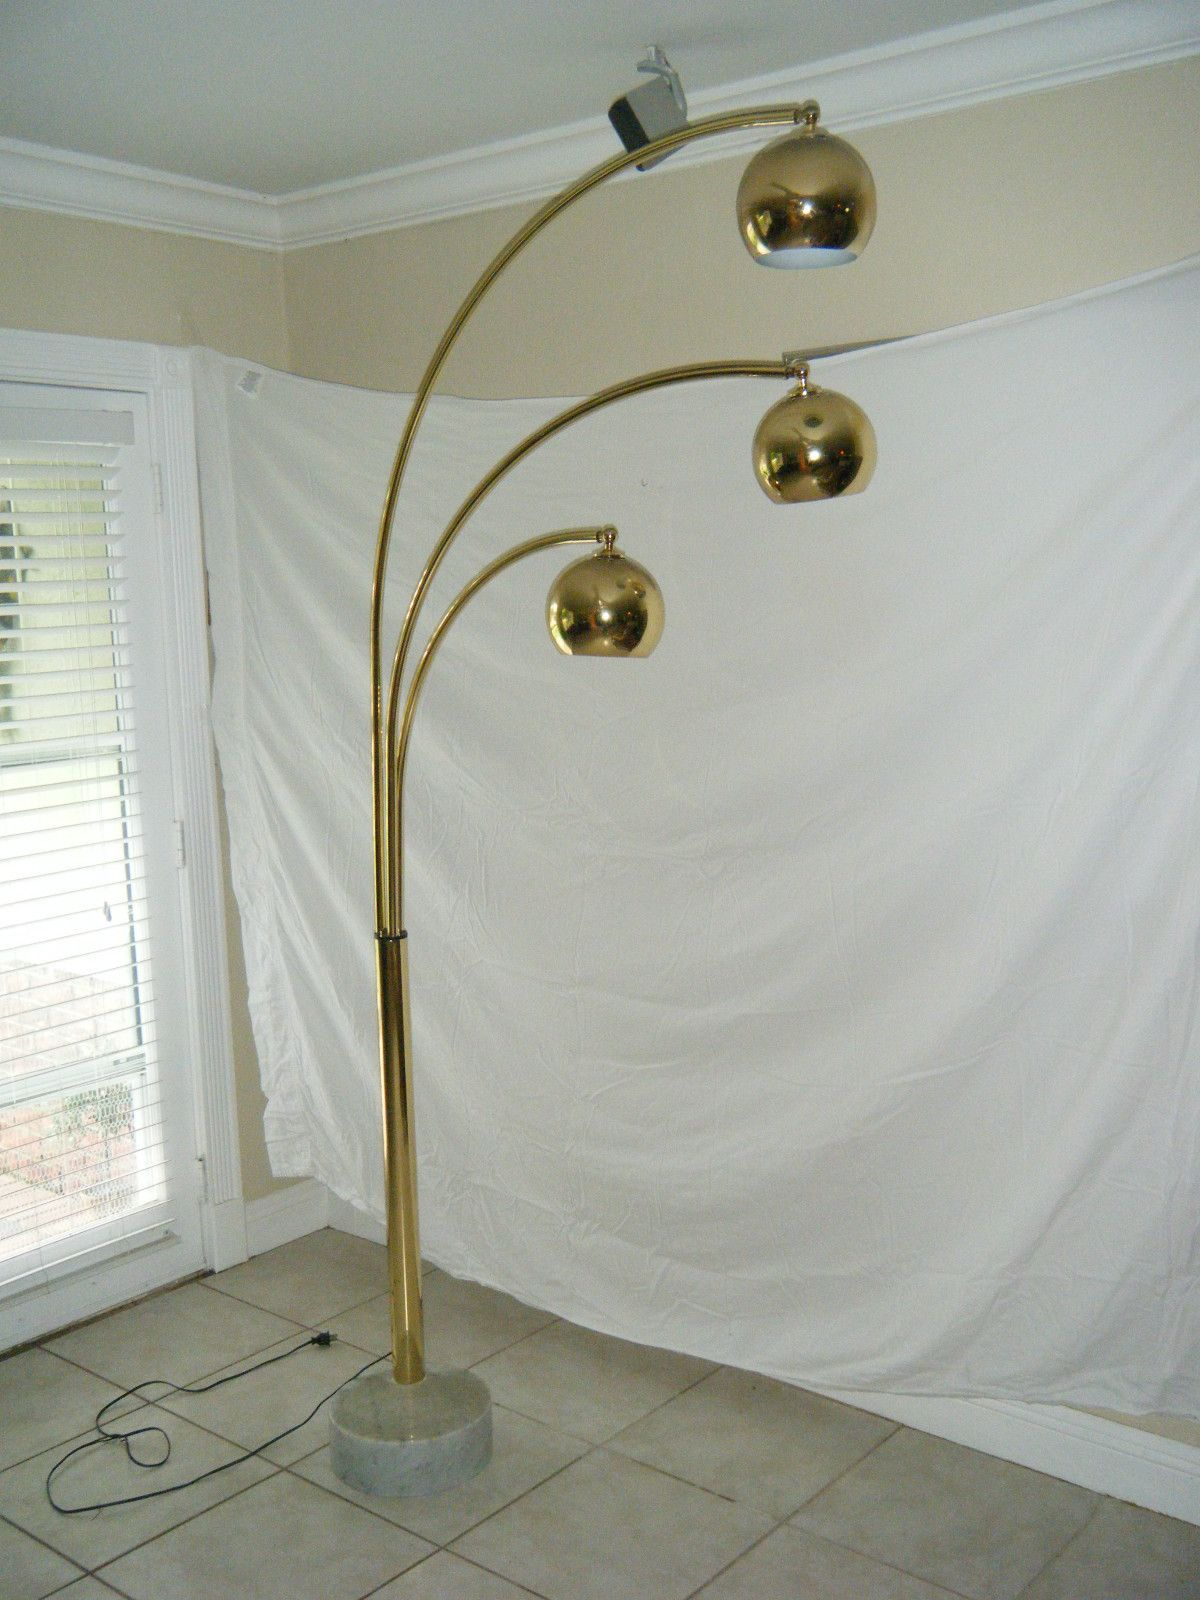 Vintage mid century brass plated arc floor lamp with 3 eye balls ...